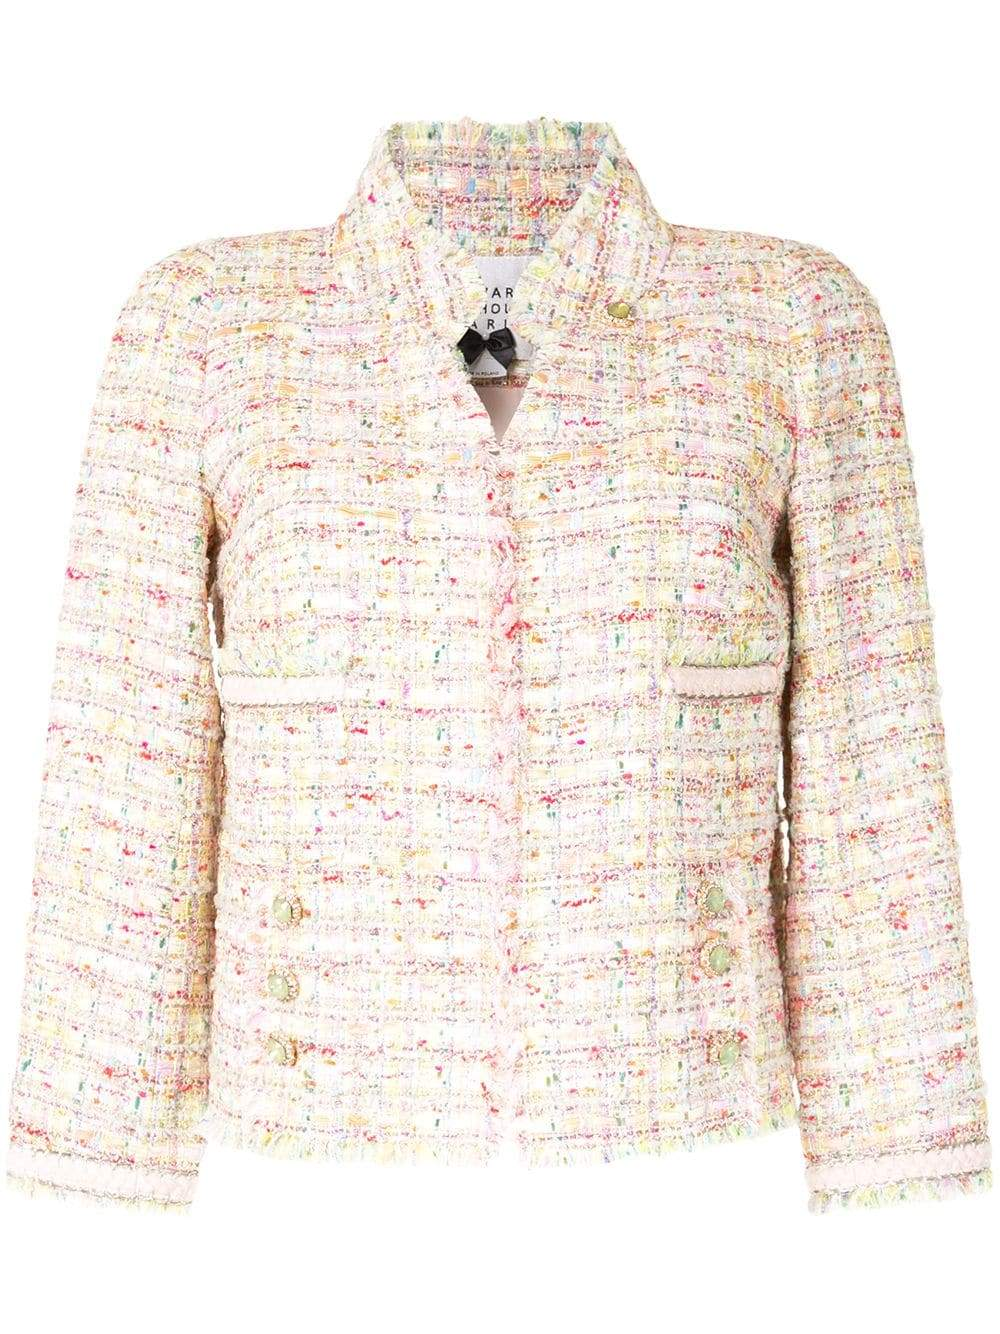 Edward Achour Paris Coats and Jackets Edward Achour Multi Pink Jacket With Jewel Clasp 421004 izzi-of-baslow